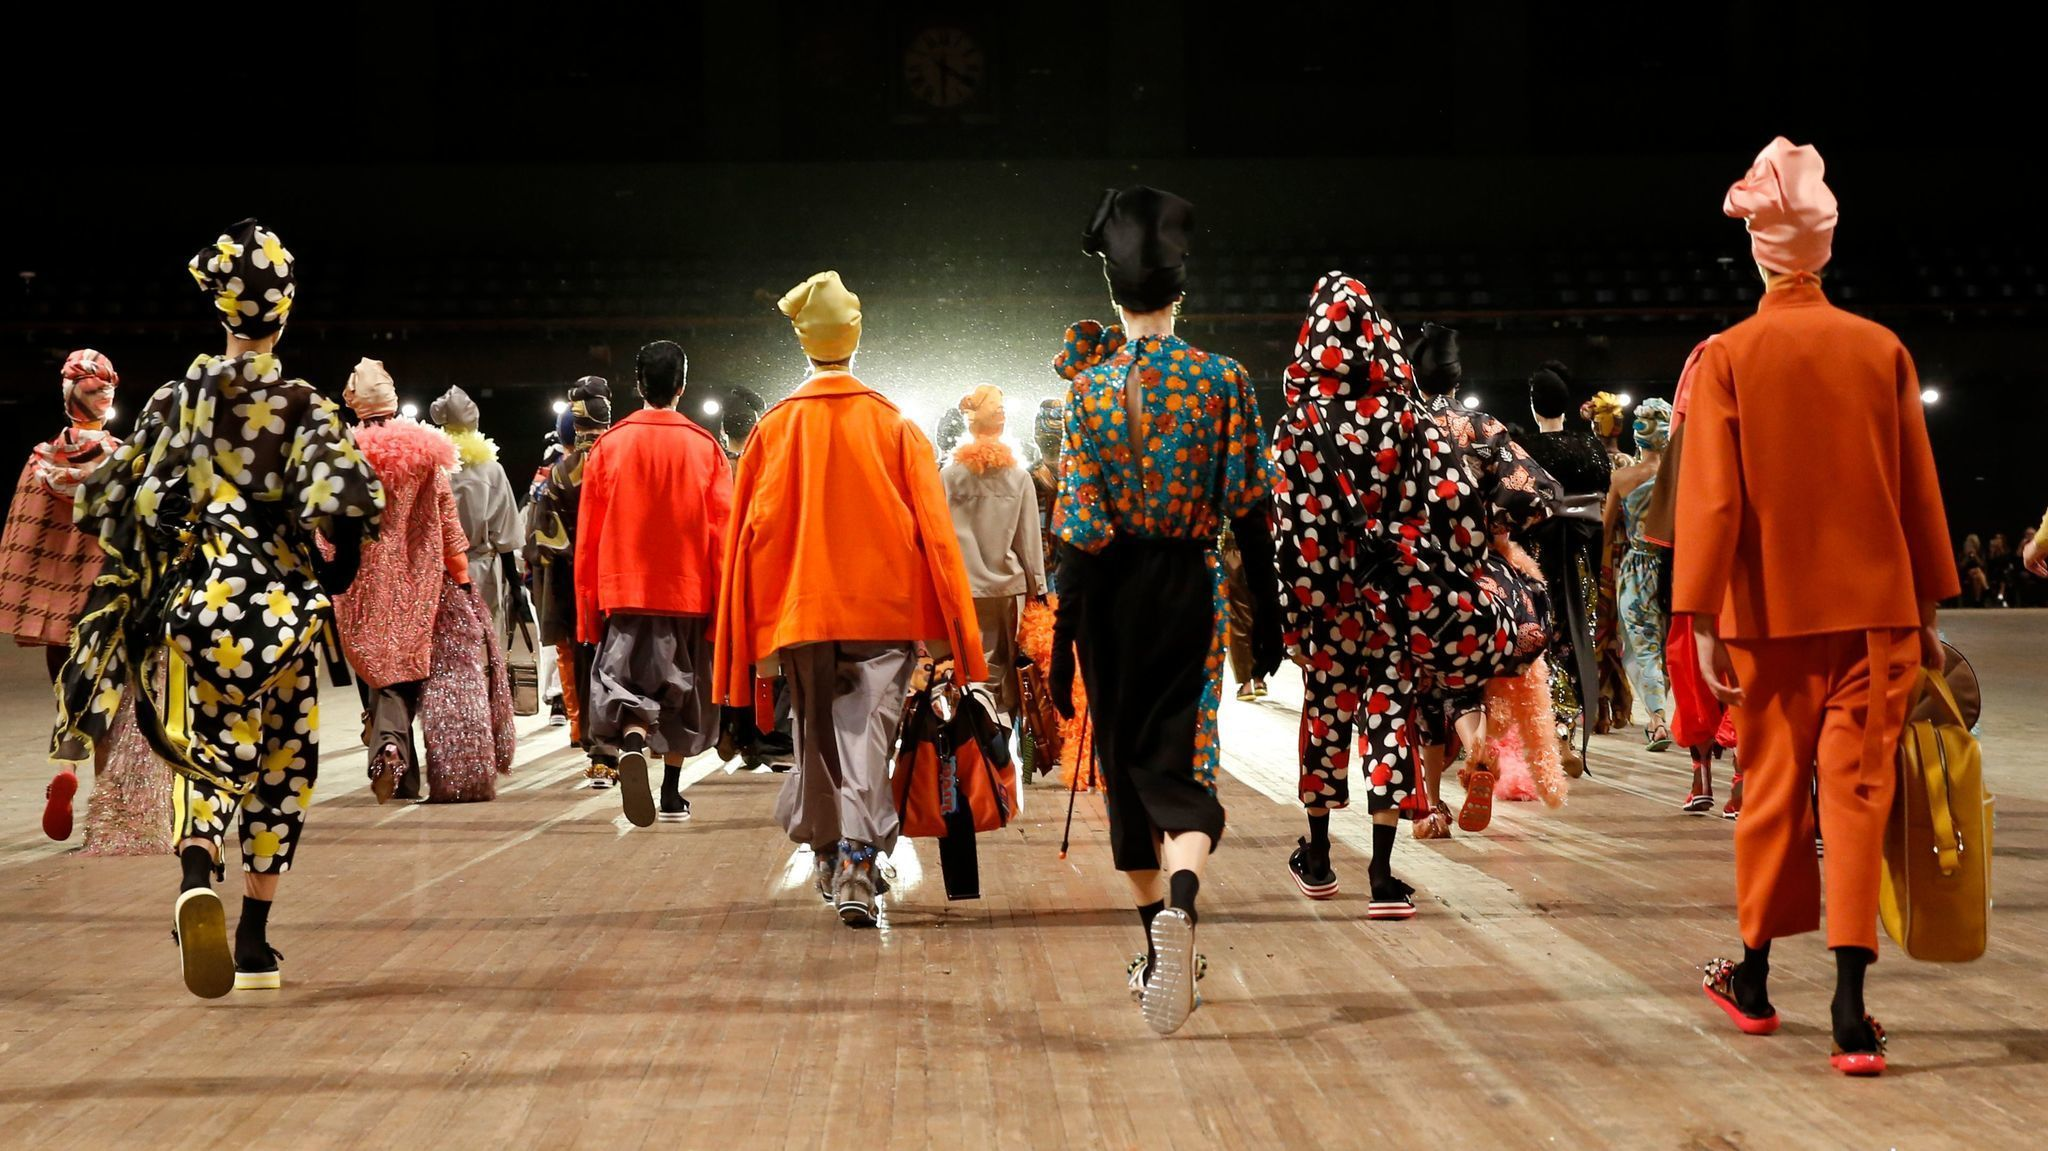 Marc Jacobs closes New York Fashion Week with a colorful trip to ... somewhere